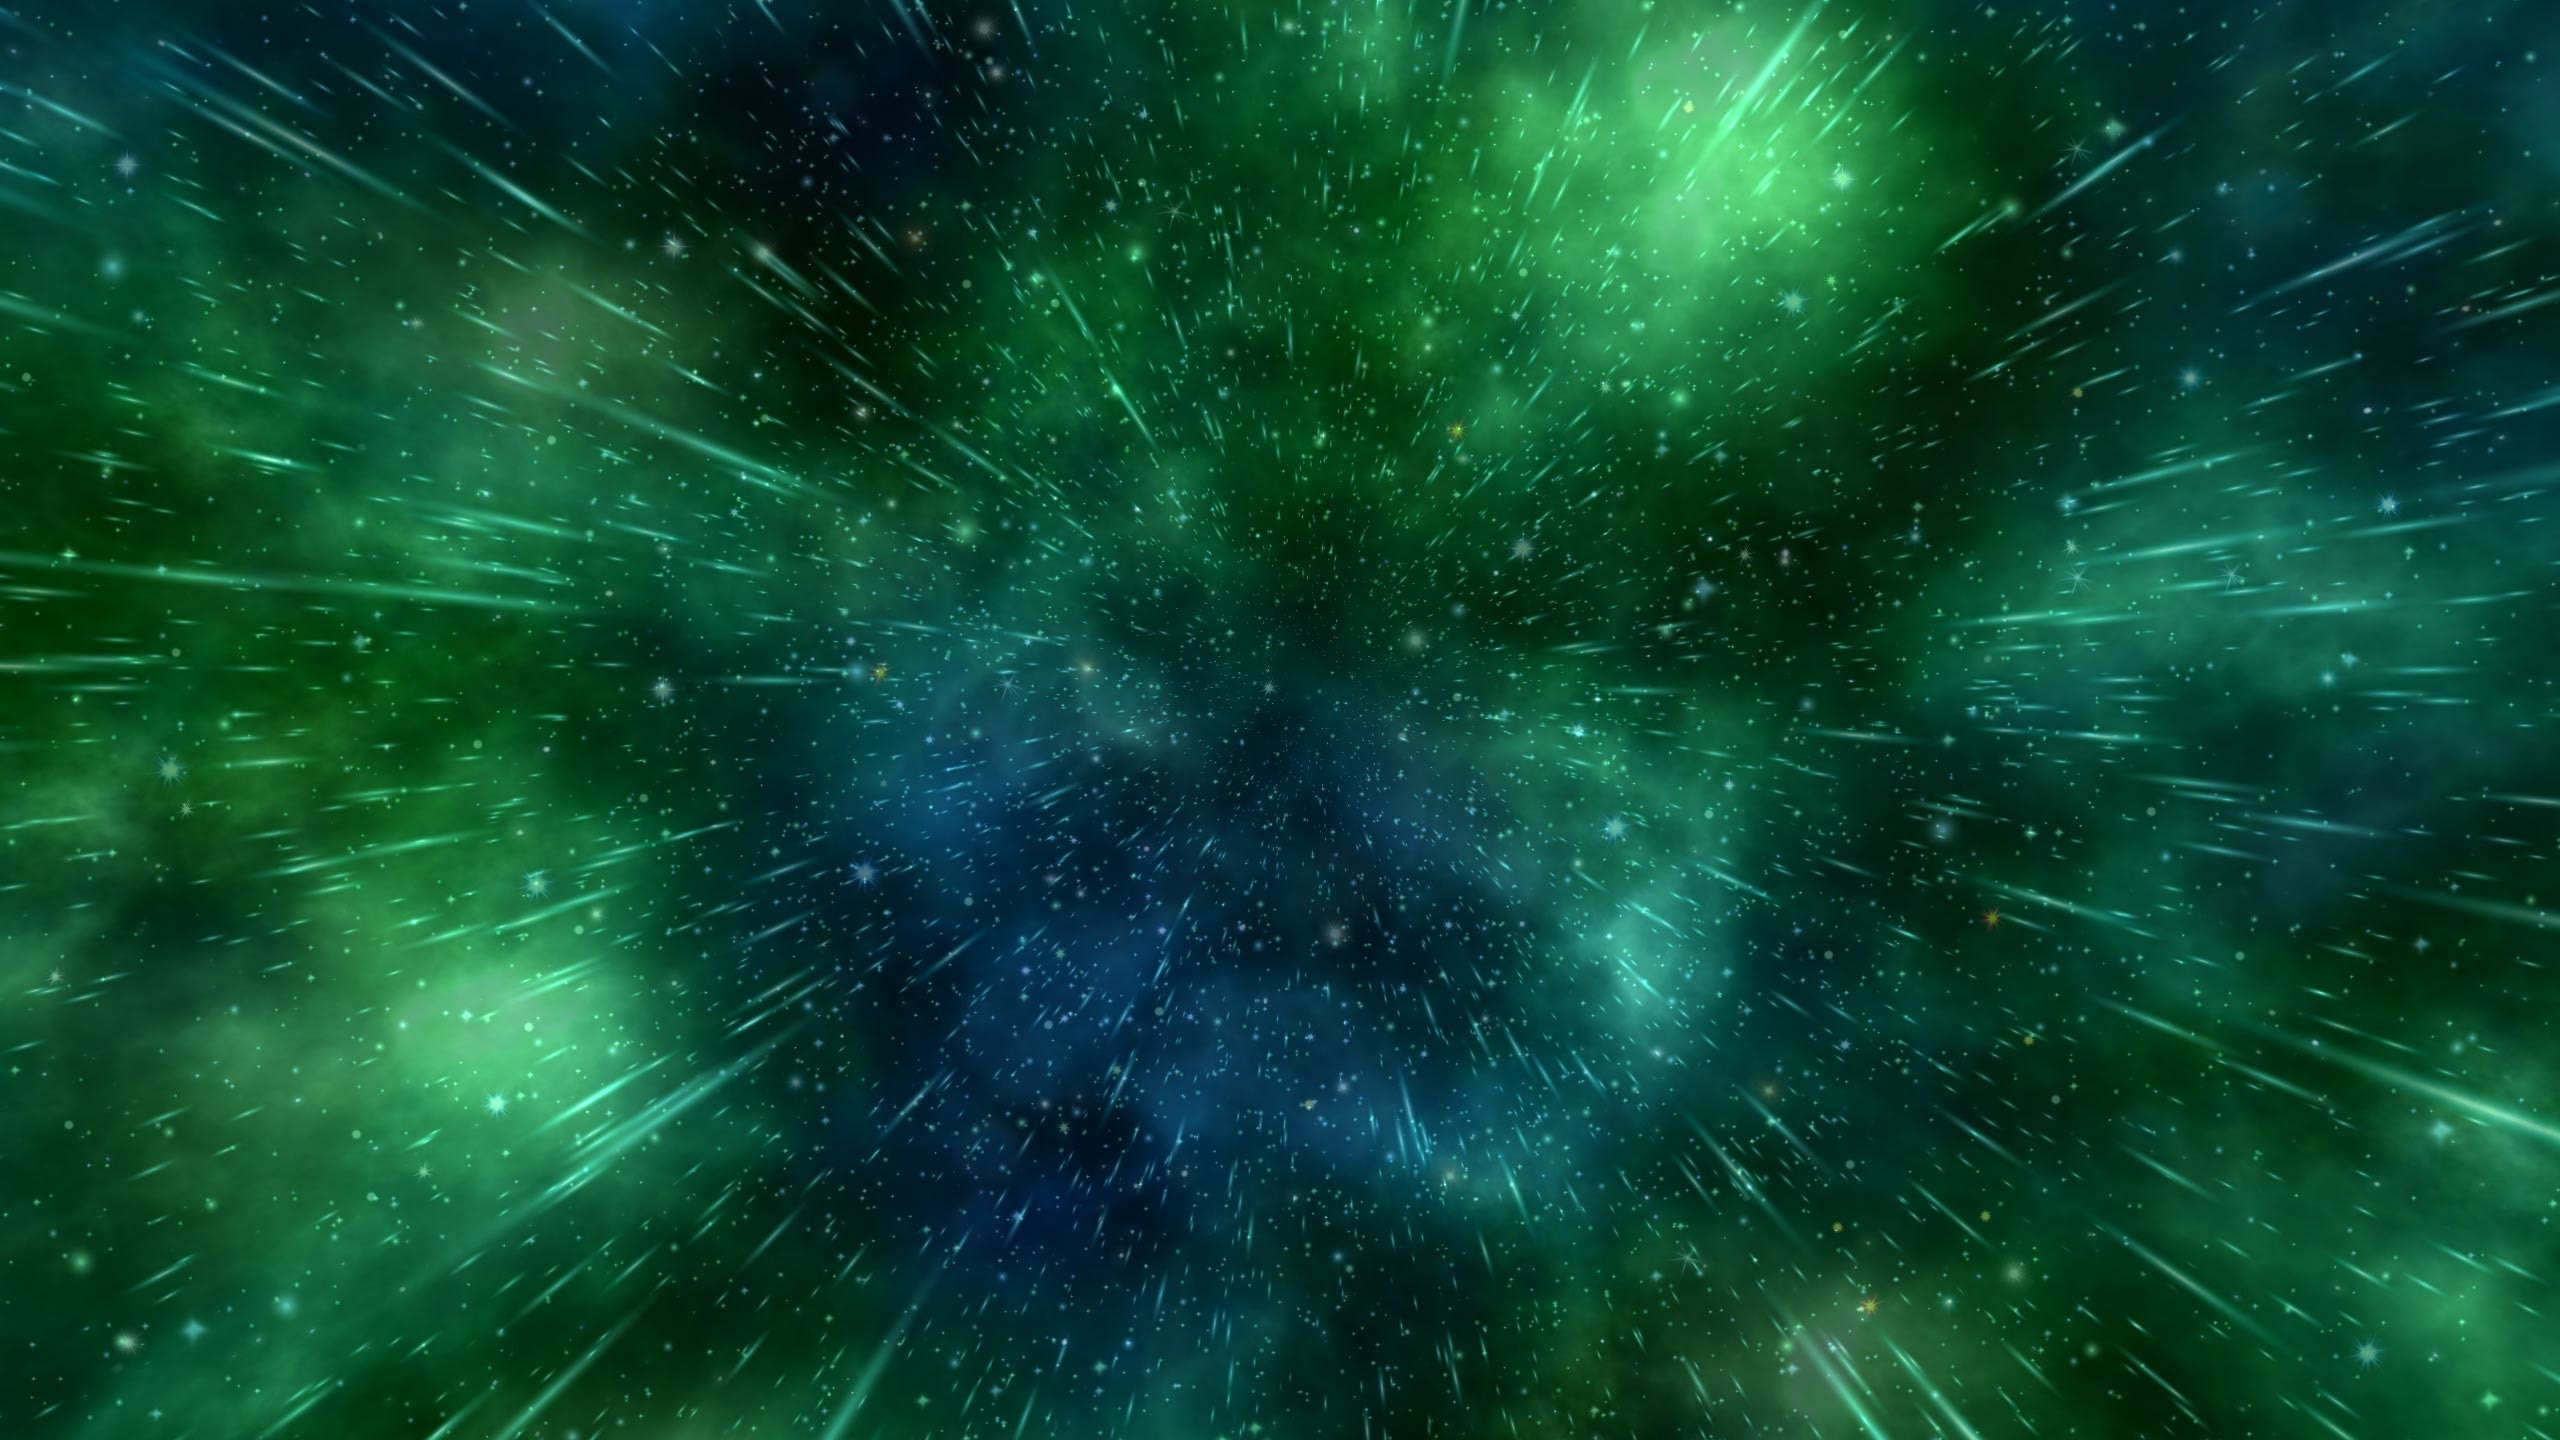 Space Live Wallpapers For Desktop 68 Images